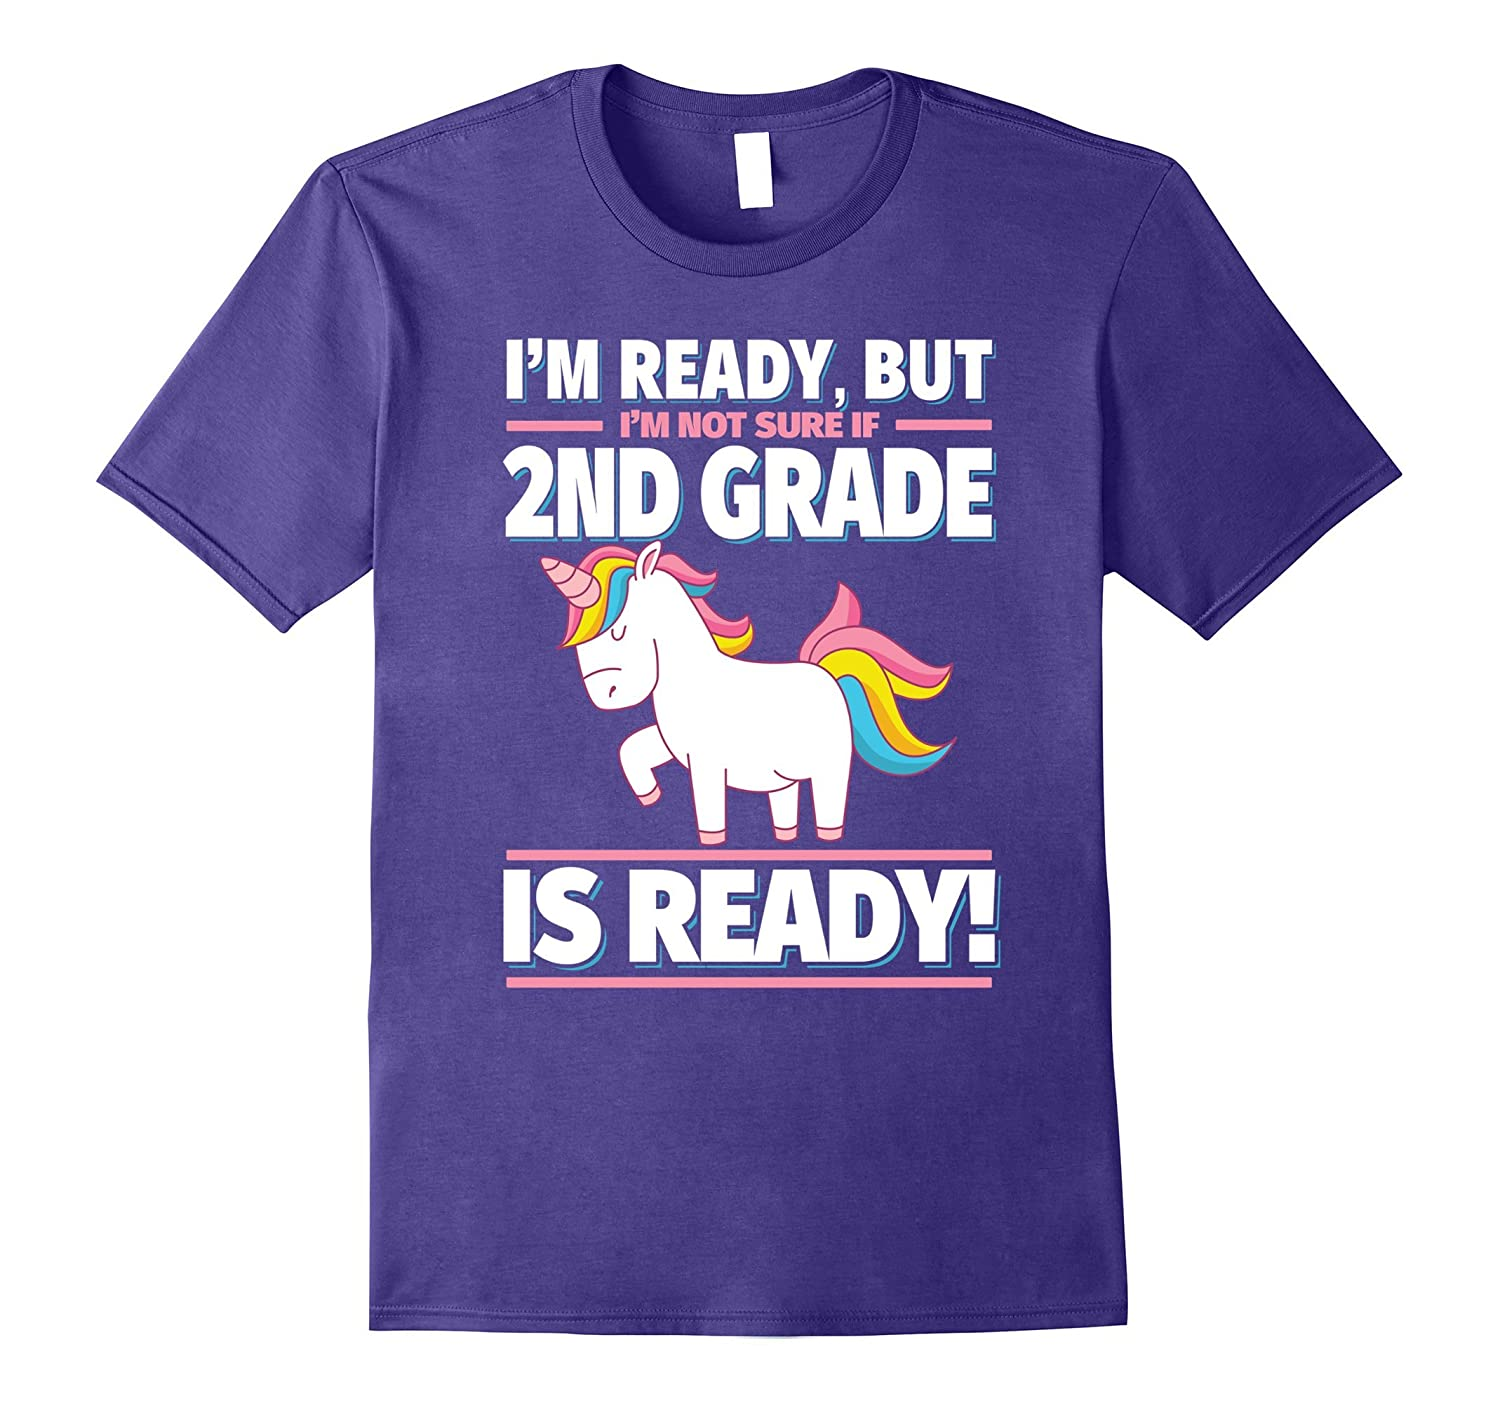 2nd Grade Back to School Unicorn Shirt - Is 2nd Grade Ready?-TH